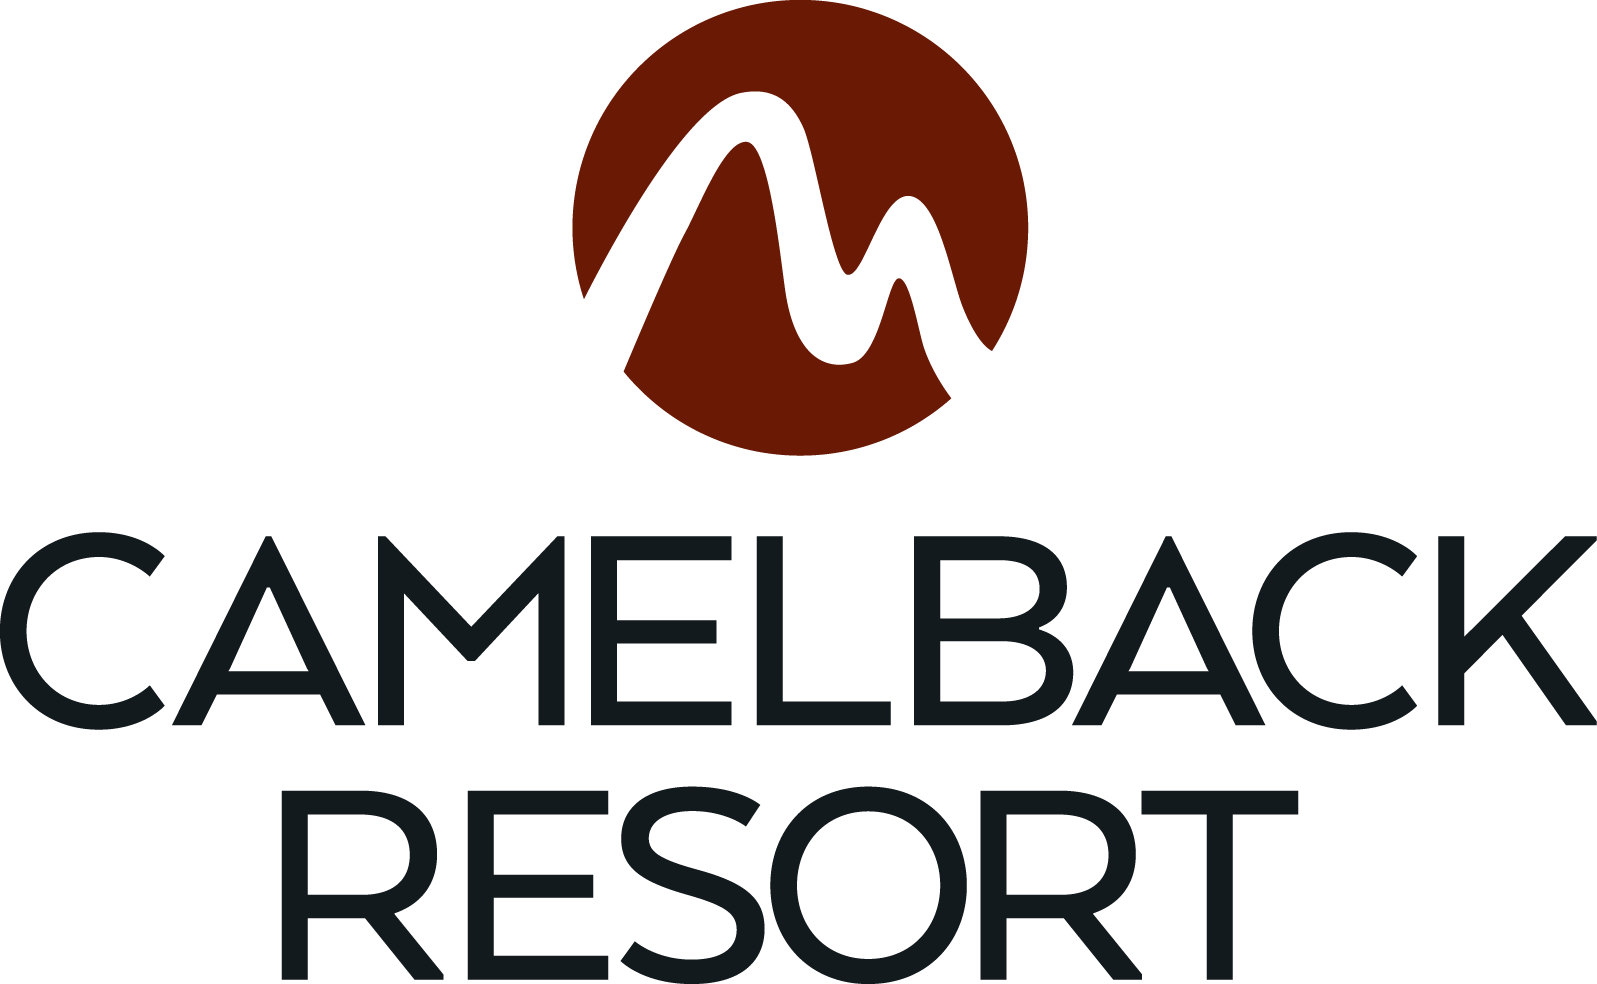 Camelback Mountain Resort Logo